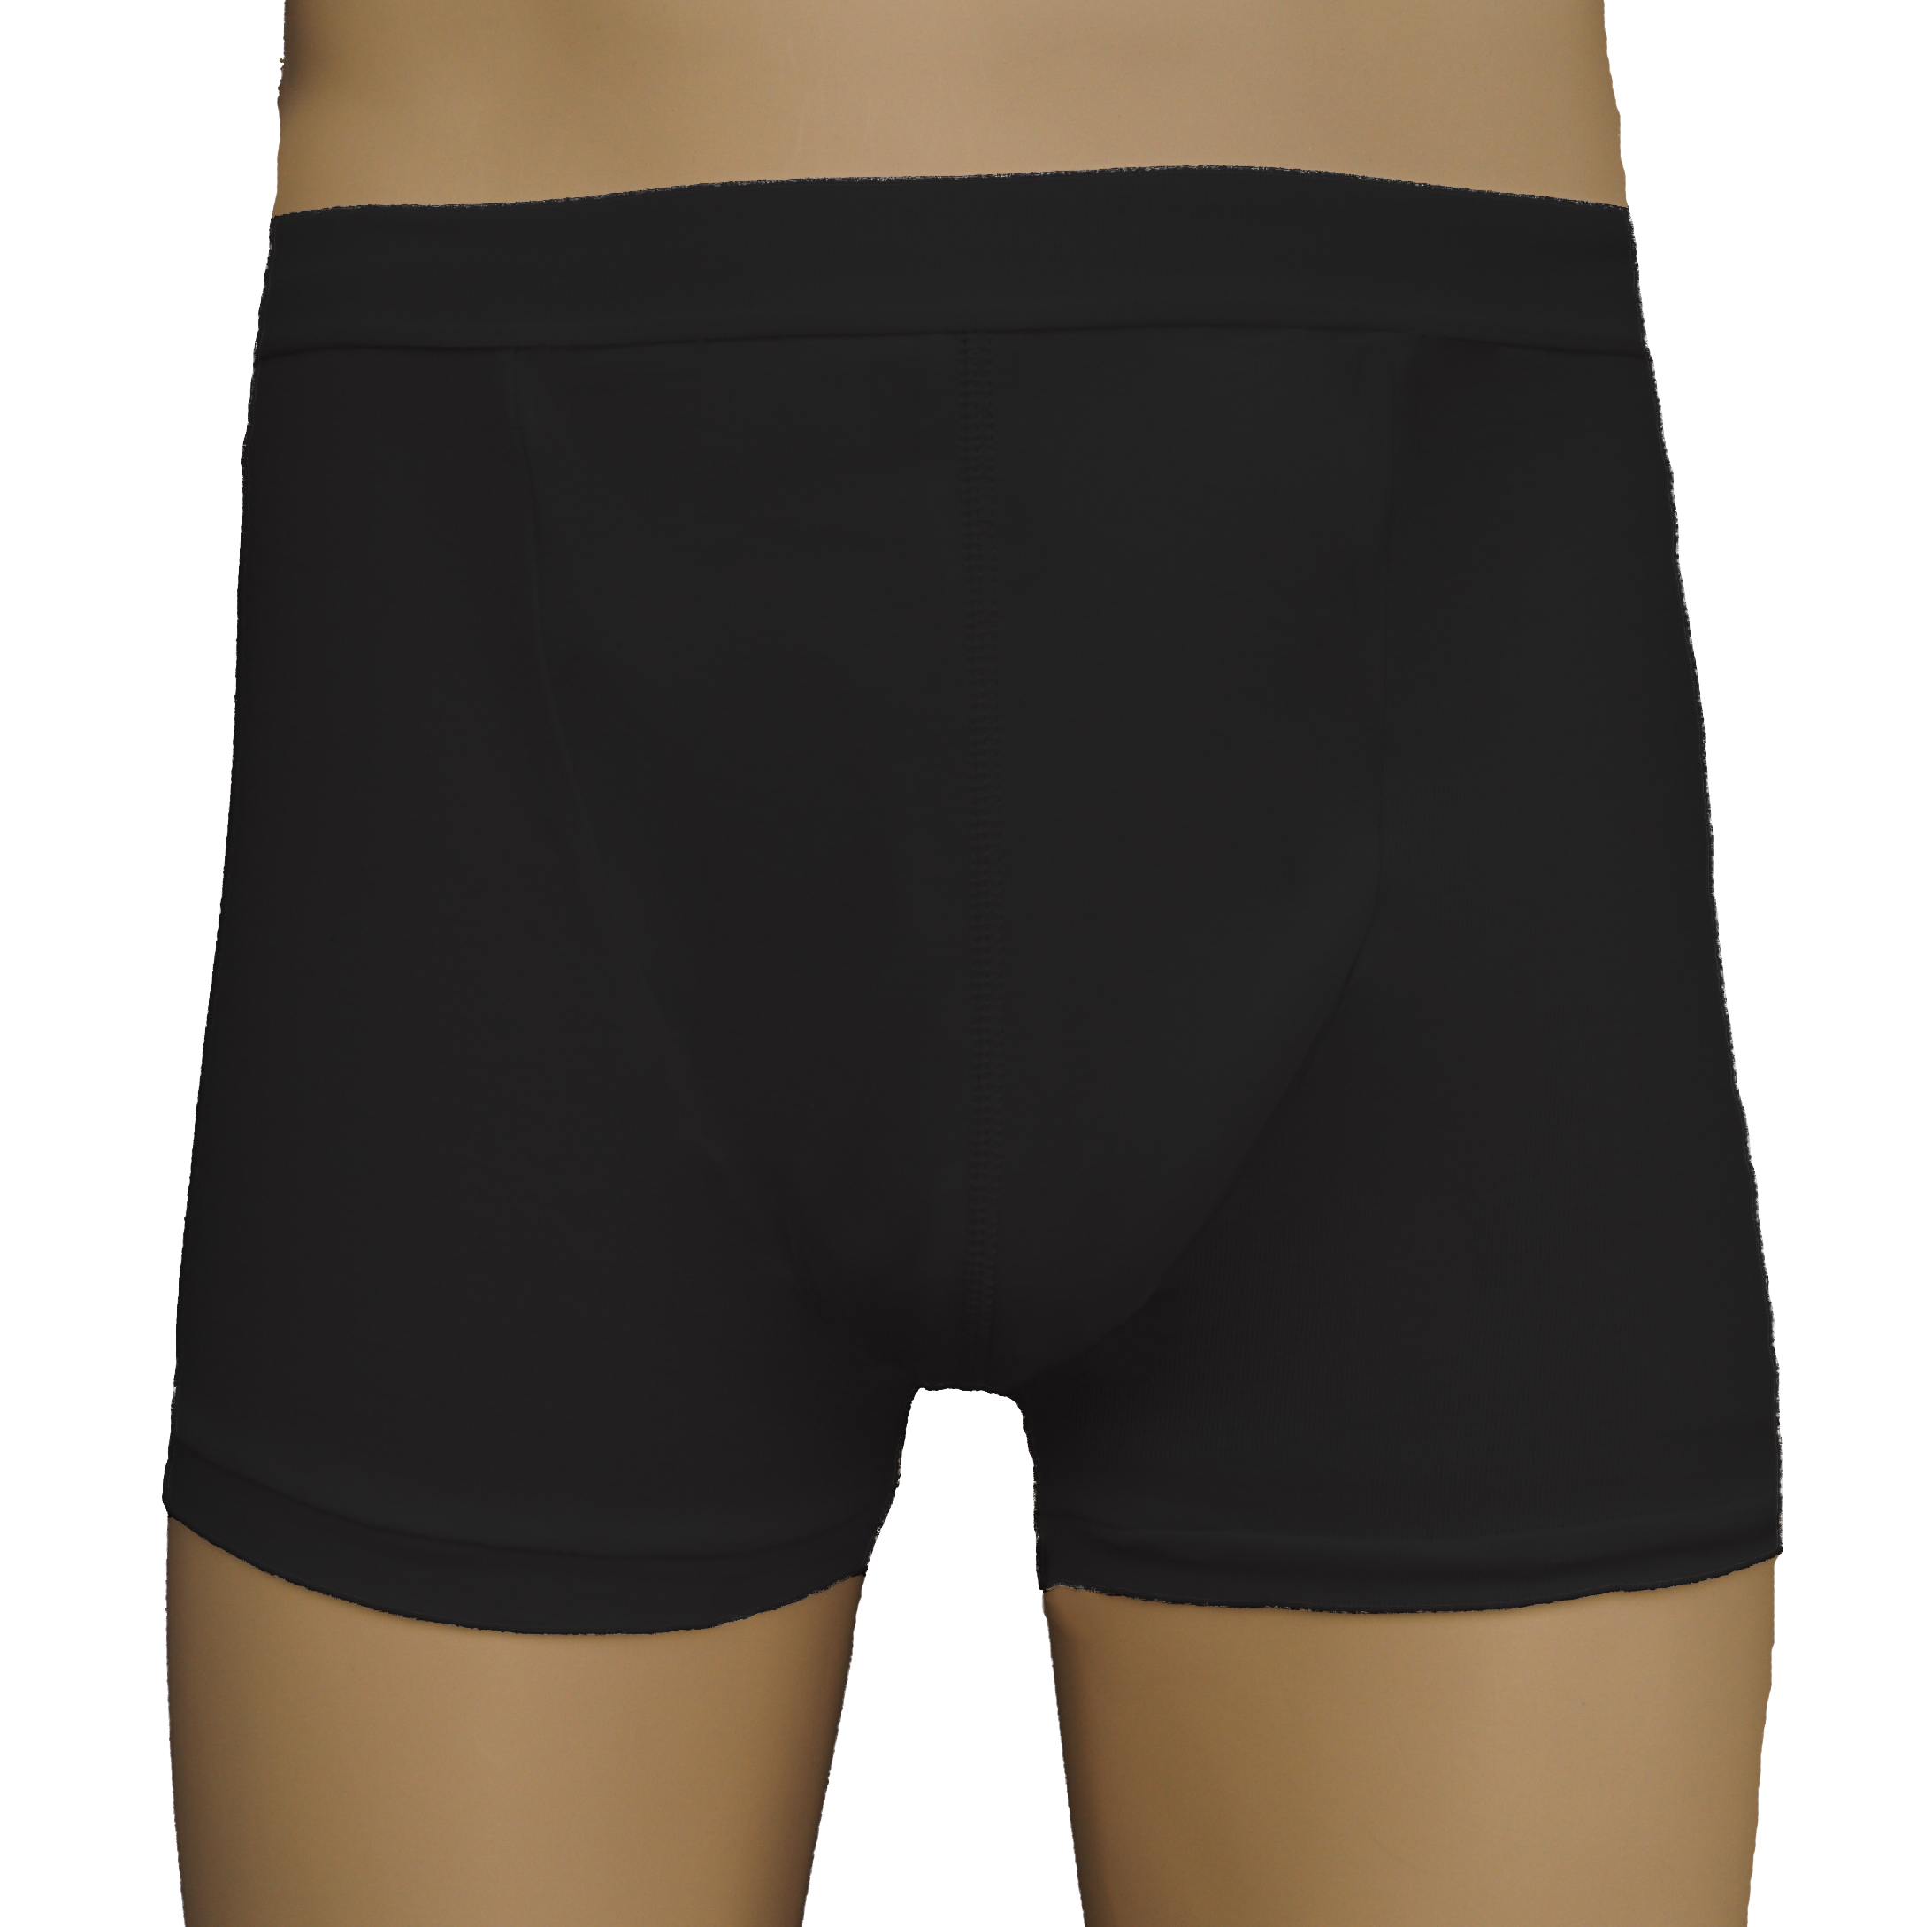 4b7f7080557d P&S Healthcare Men's Protection Trunks - No Absorbent Pad - Suitable ...